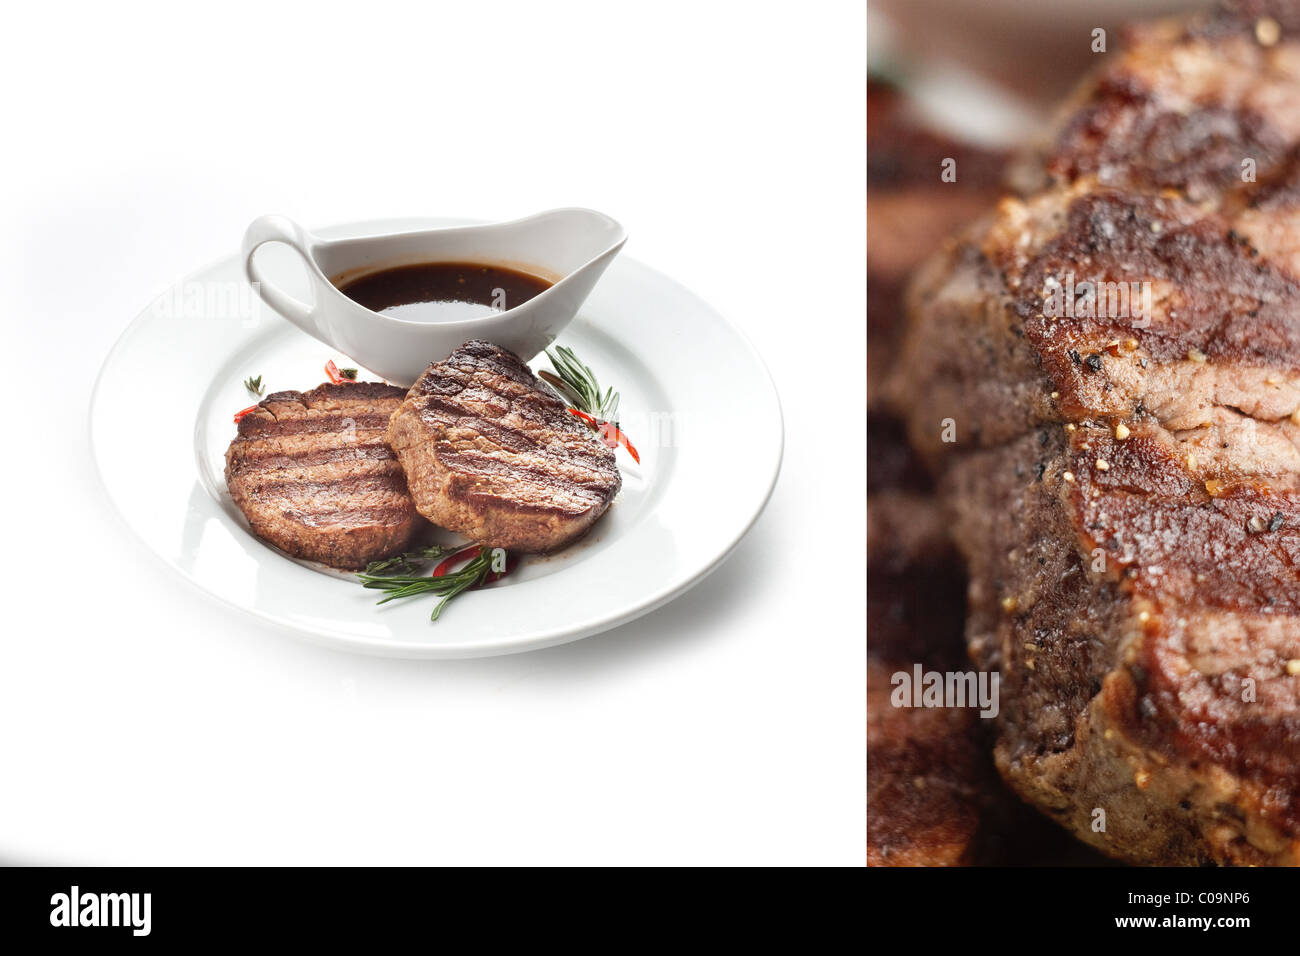 Steak cooking on wood fired flame grill in Restaurant on white plate menu restaurant with vegetables and souse - Stock Image